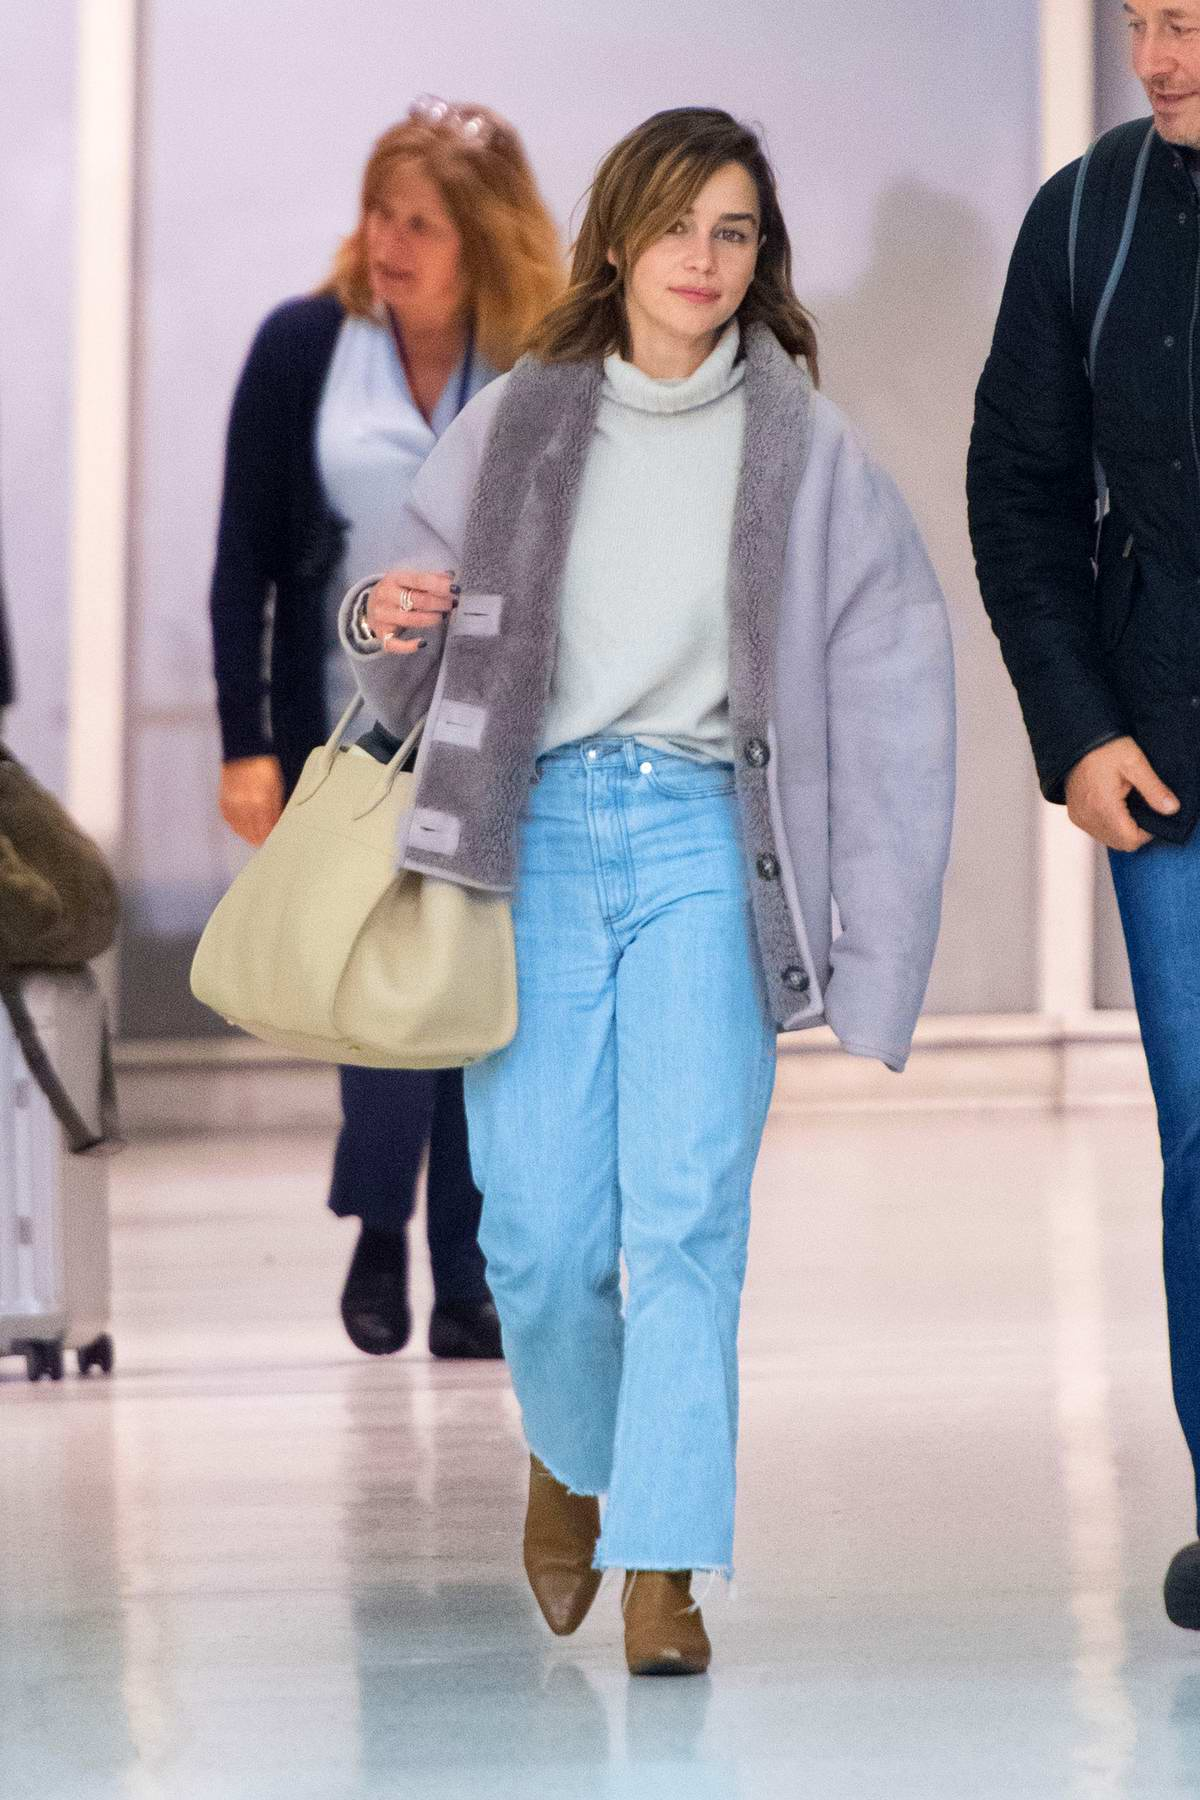 Emilia Clarke is all smiles as she arrives at JFK Airport in New York City